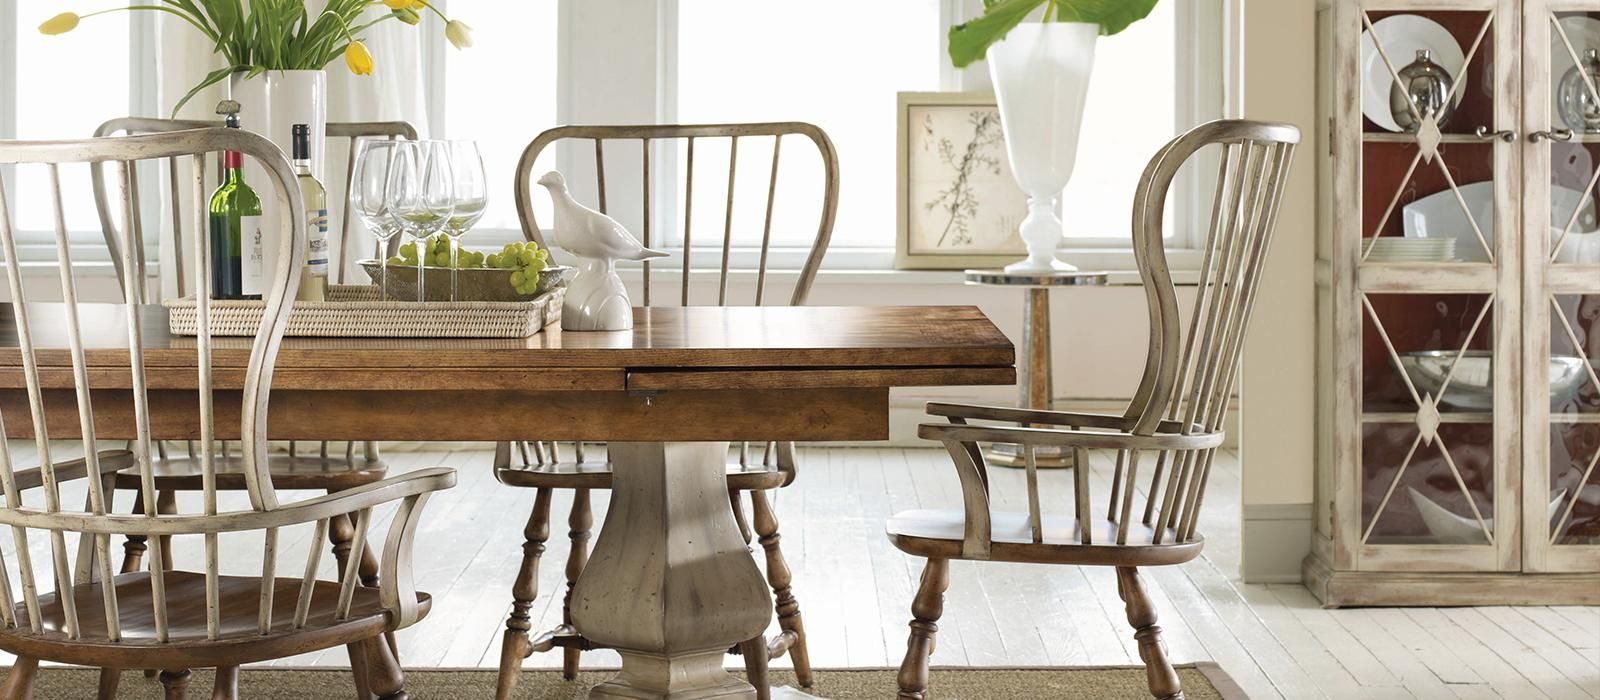 Farmhouse style with fresh bursts of cornflower and blue